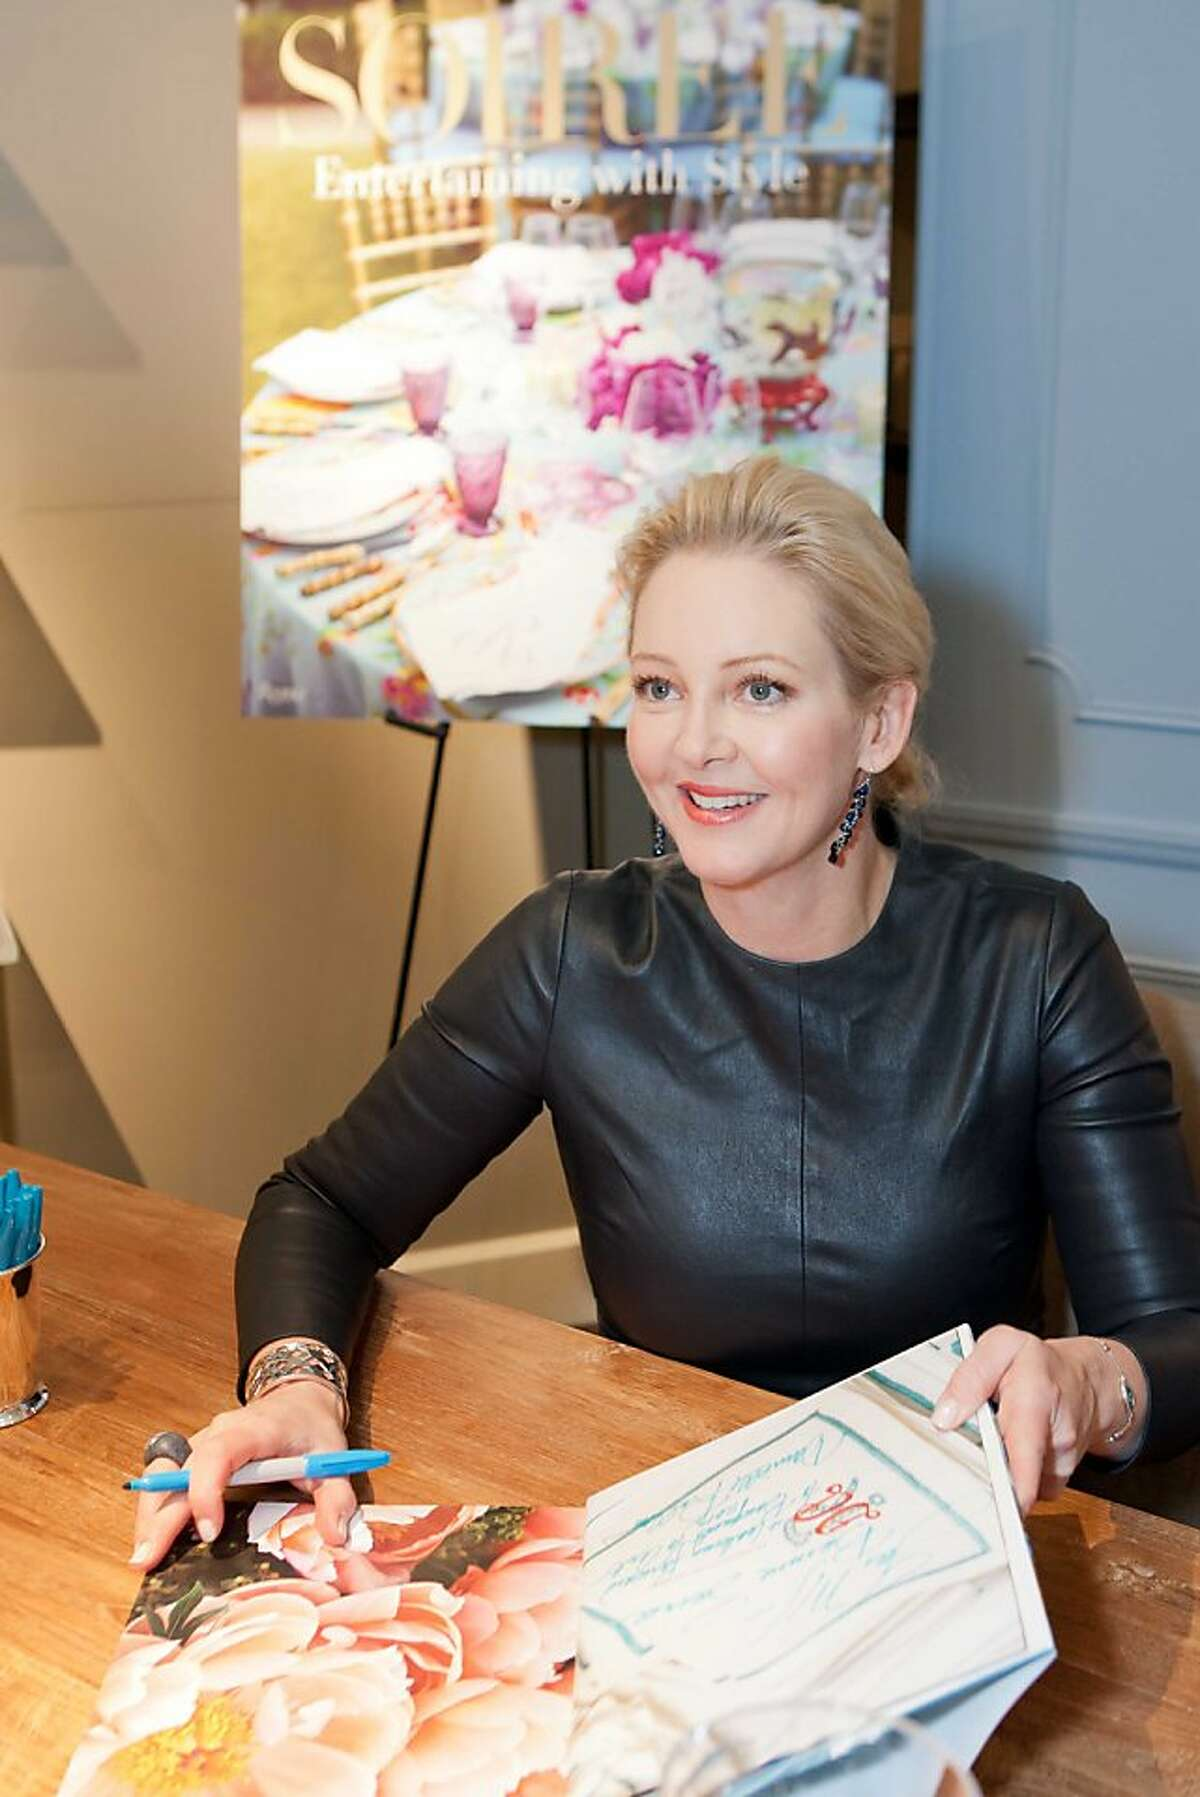 Atlanta society hostess Danielle Rollins, a longtime friend of several young San Francisco philanthropists, came to town to sign copies of her new book,